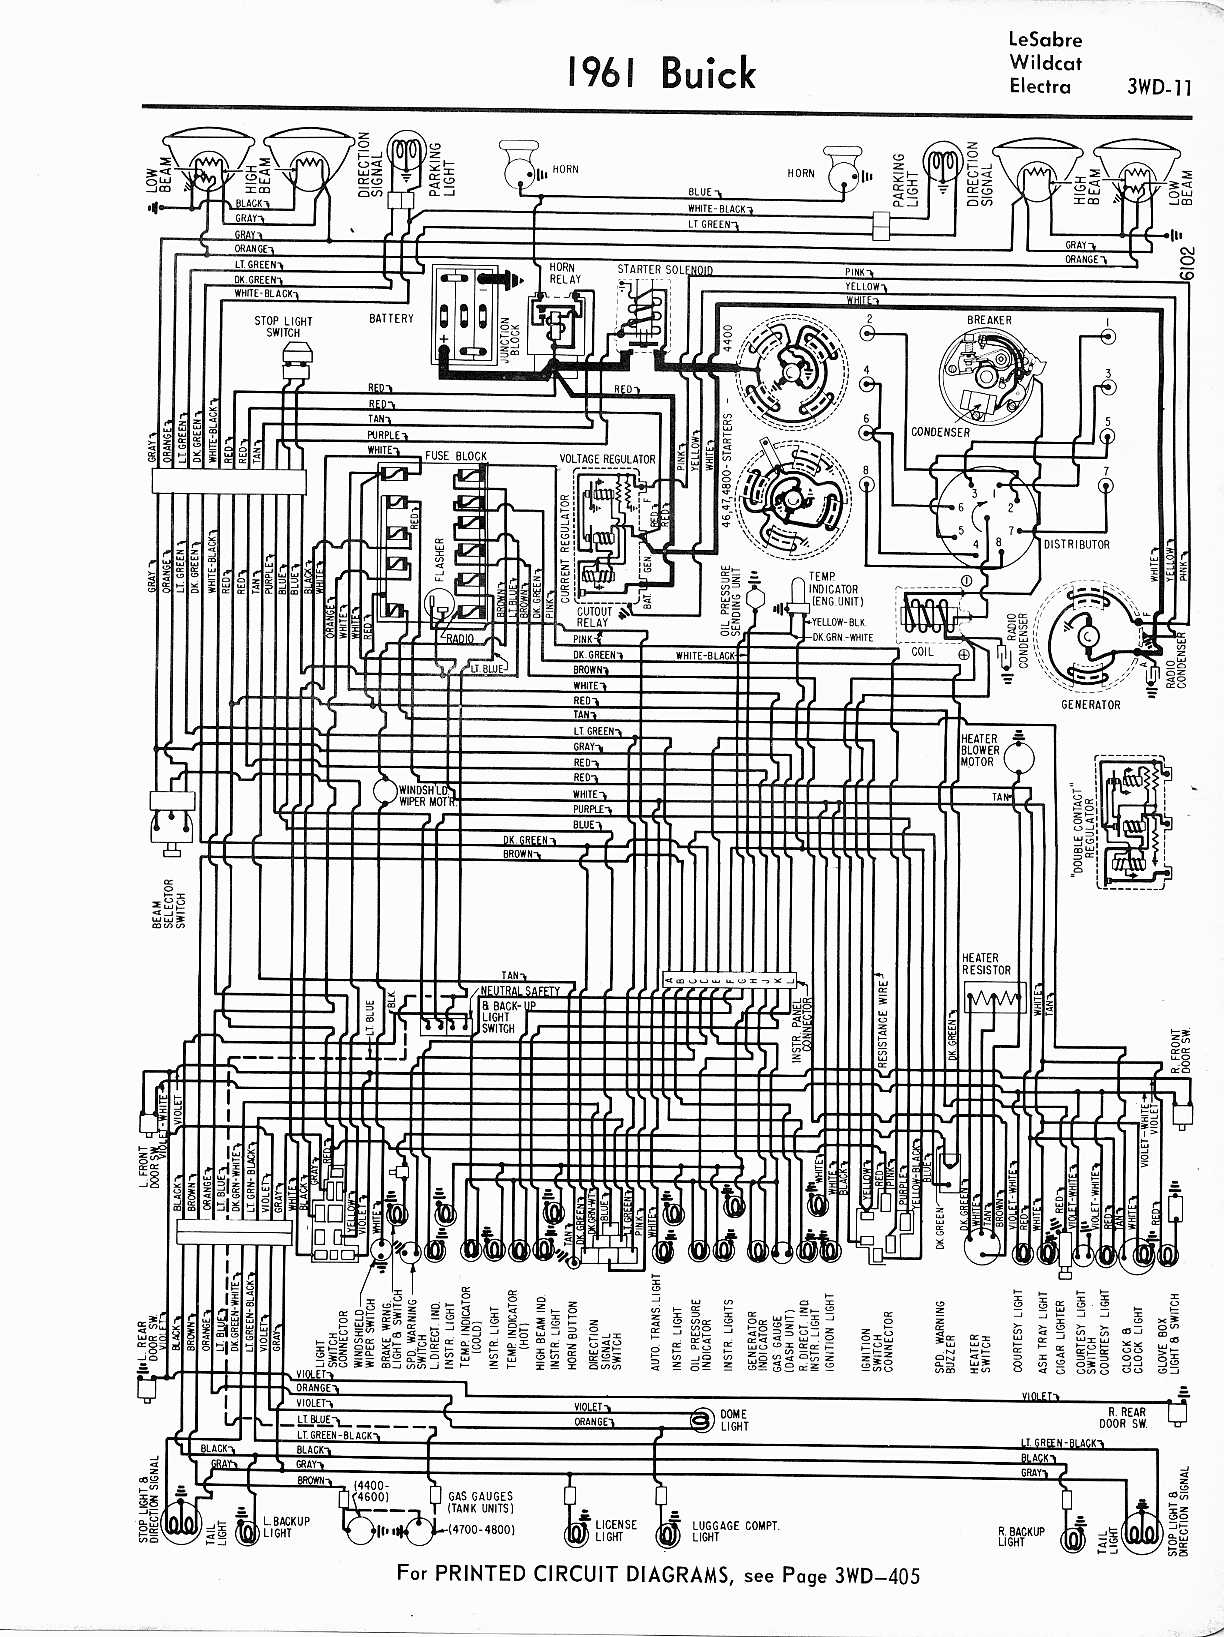 Buick Reatta Wiring Diagram Just Another Blog Schematic Fuse Box 98 Regal Library Rh 14 Muehlwald De 1996 Diagrams